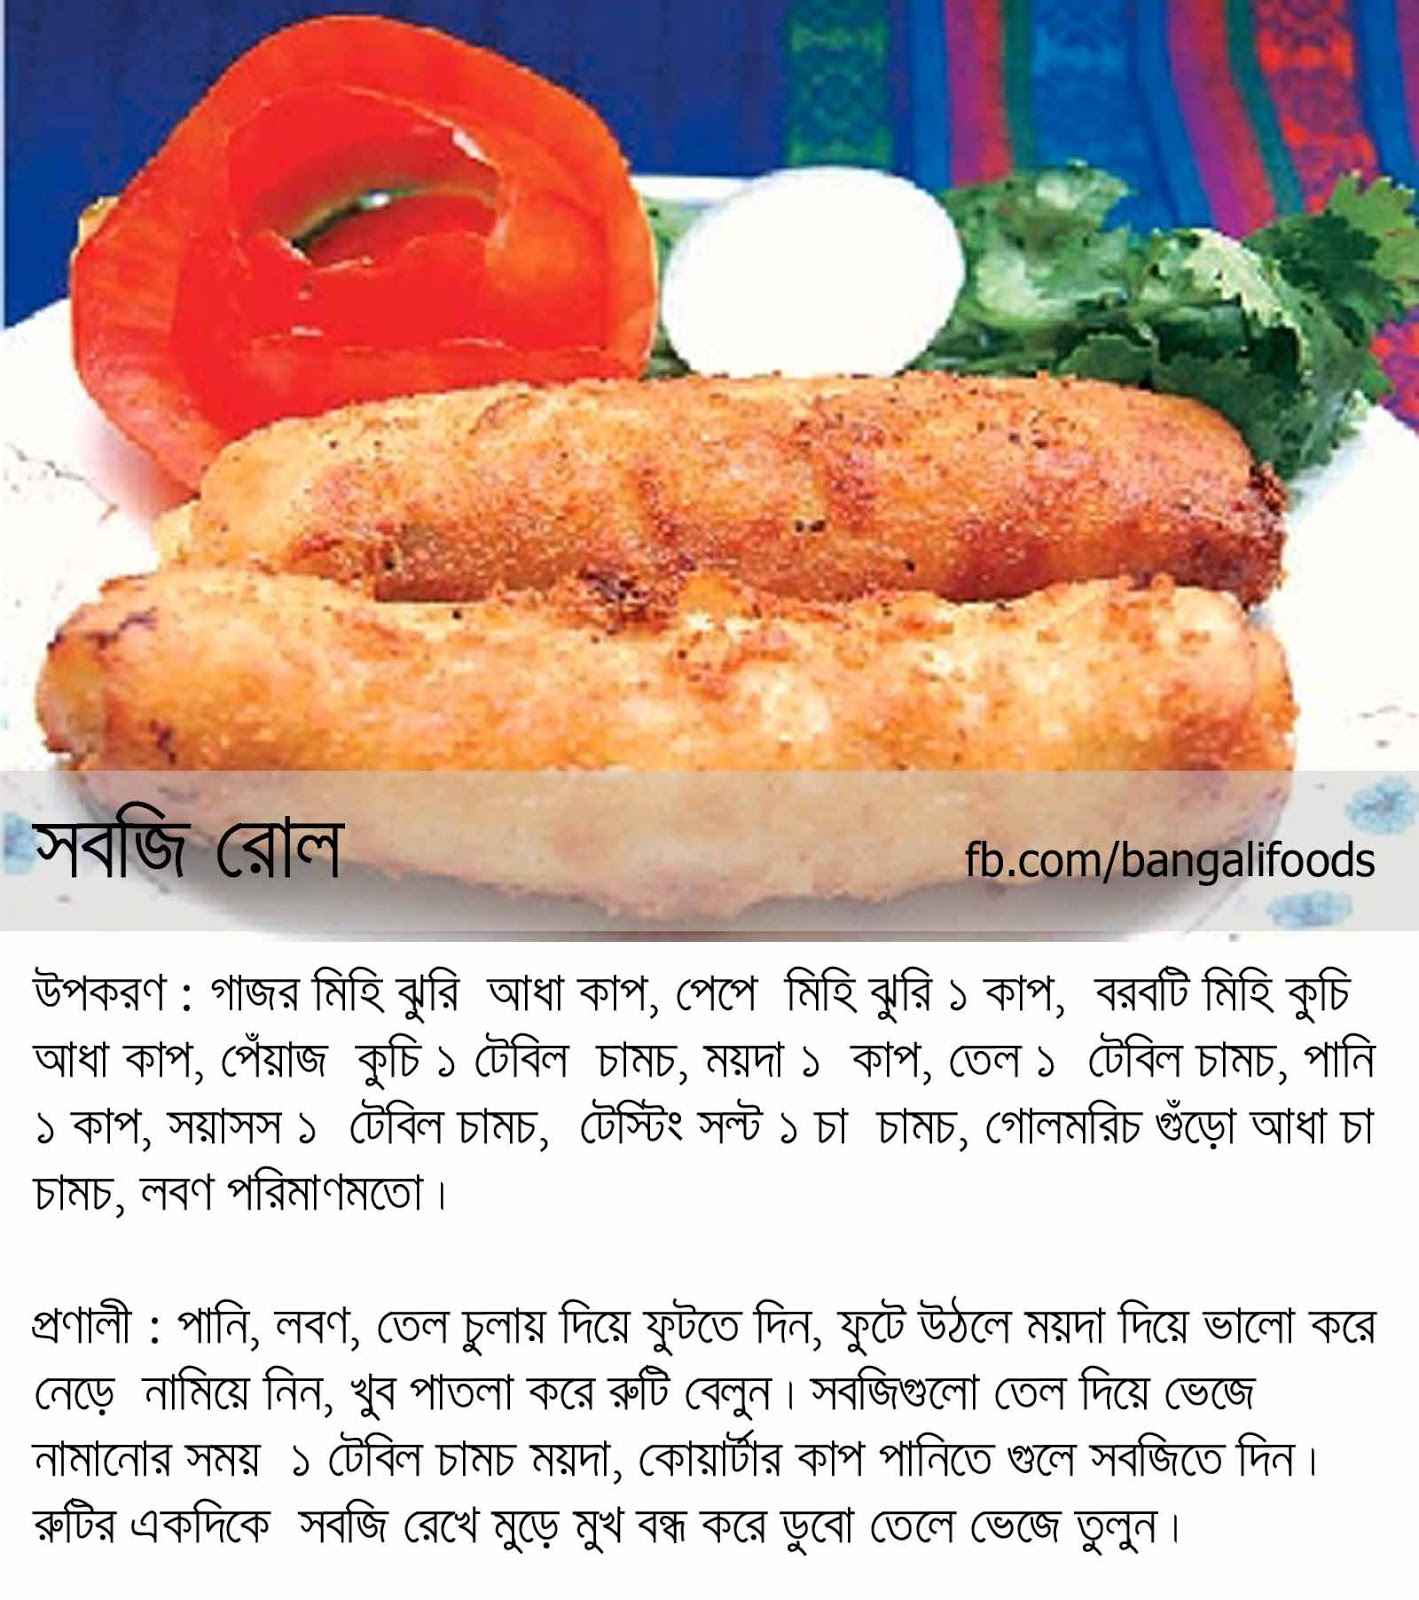 Bangali foods snack food recipes in bengali some easy and tasty snack food recipes in bengali language forumfinder Gallery